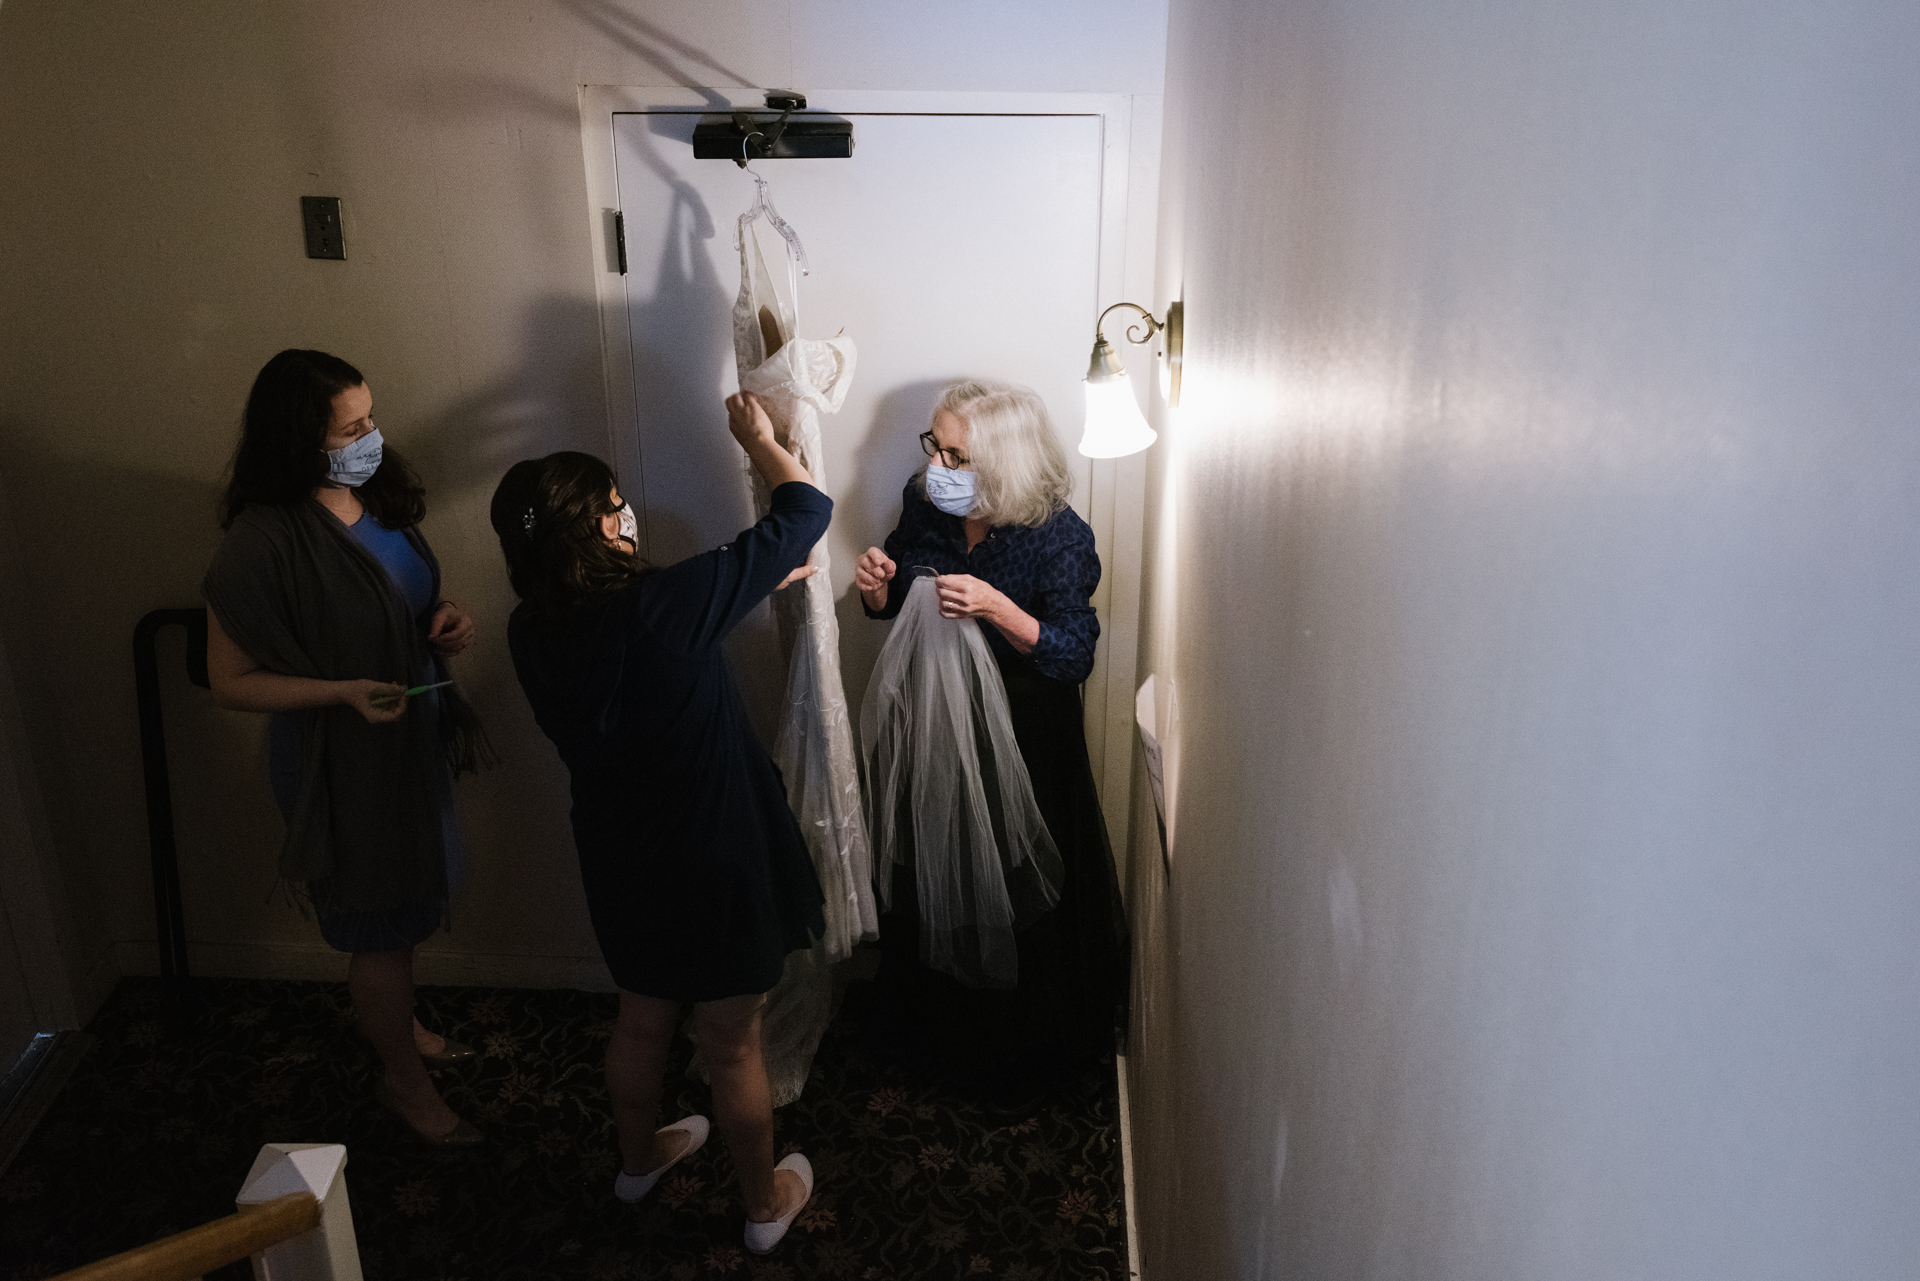 Hudson House River Inn, Cold Spring, New York Wedding Venue Image | The bride takes her dress off a hanger with her mother and a friend beside her